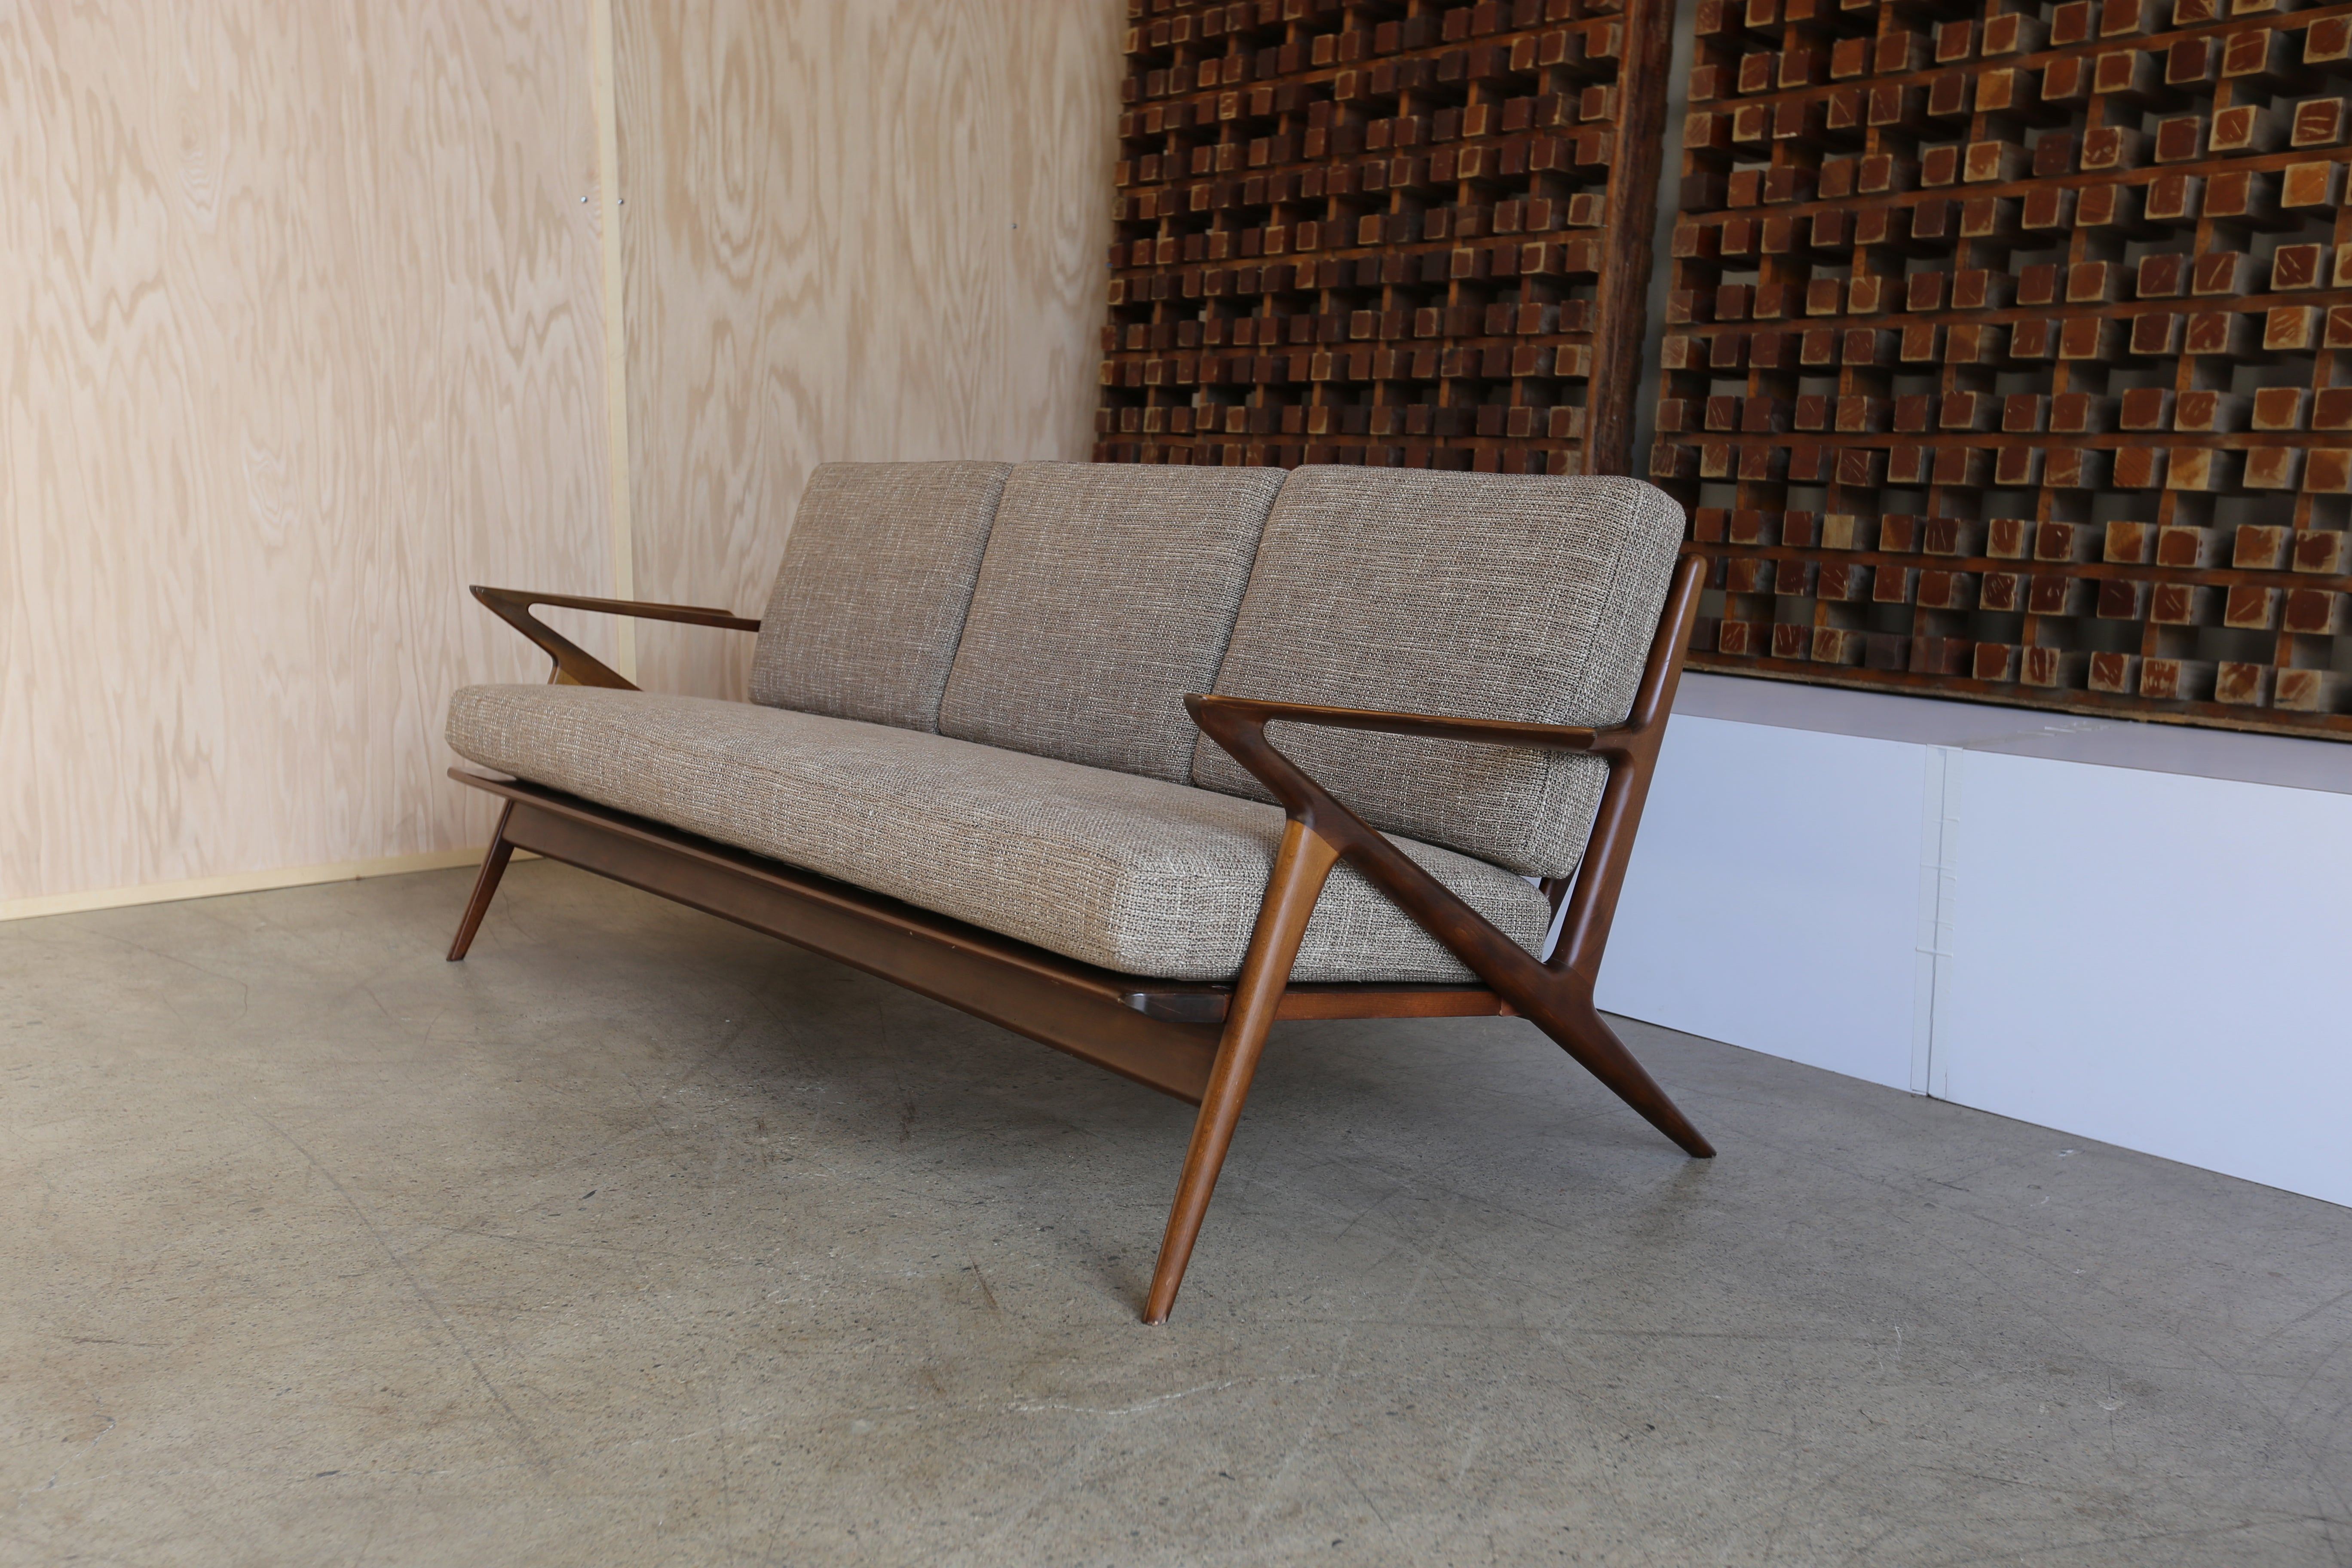 Z Sofa by Poul Jensen for Selig at 1stdibs